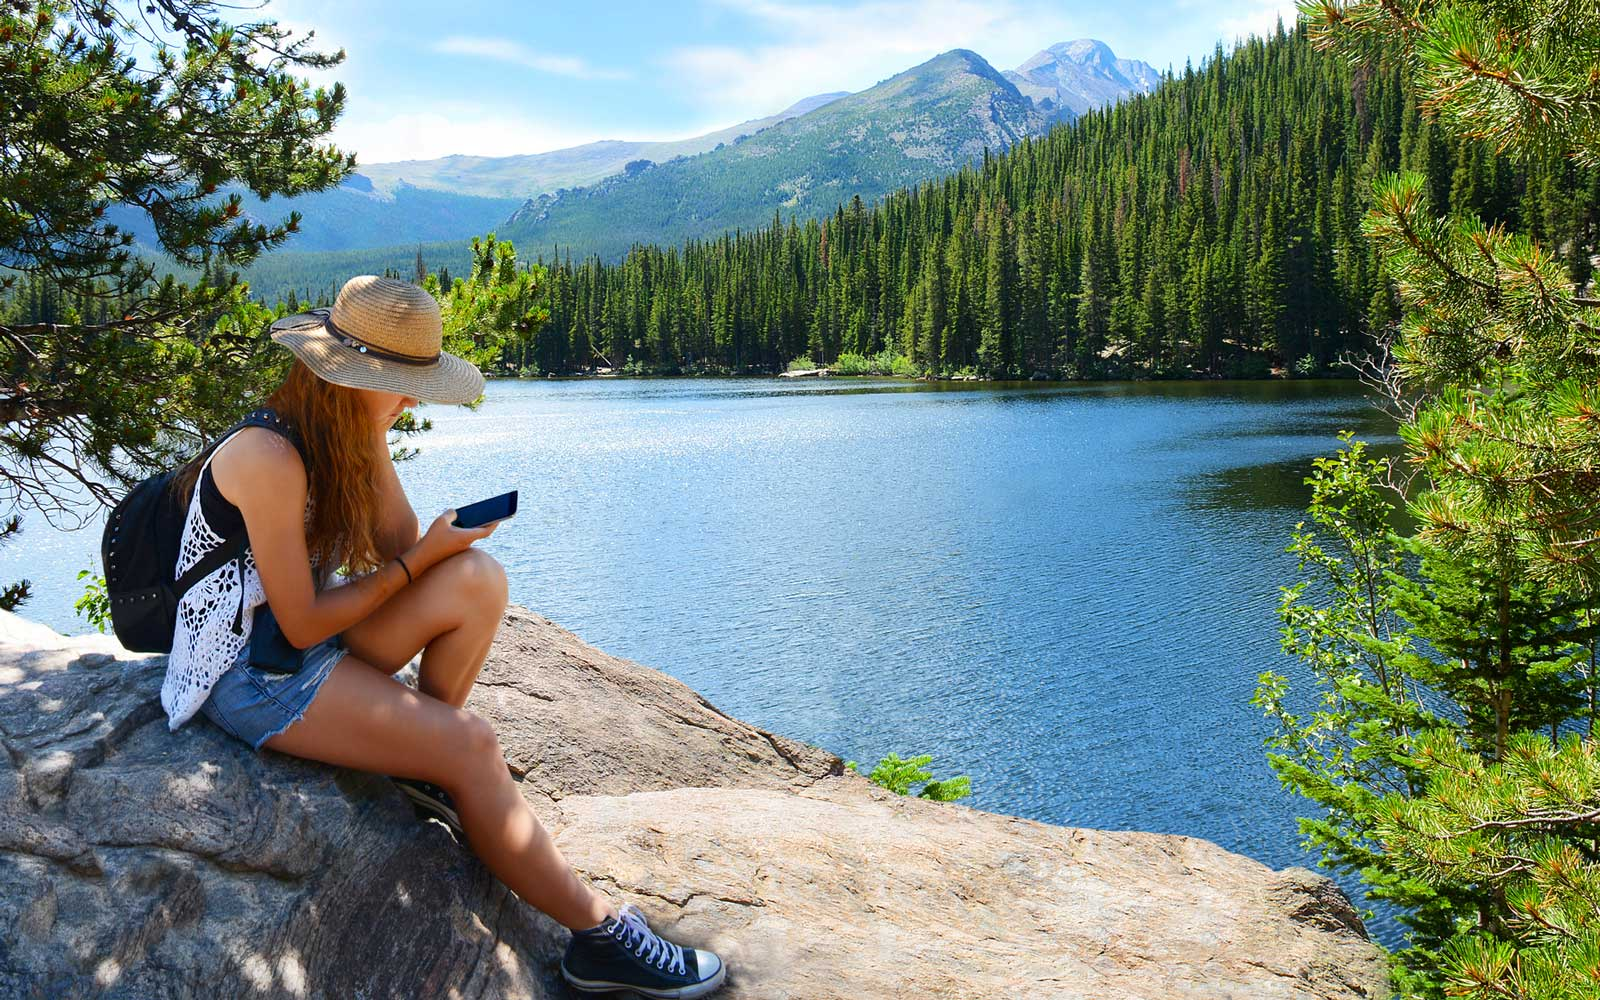 Woman using a cell phone by a lake while on vacation